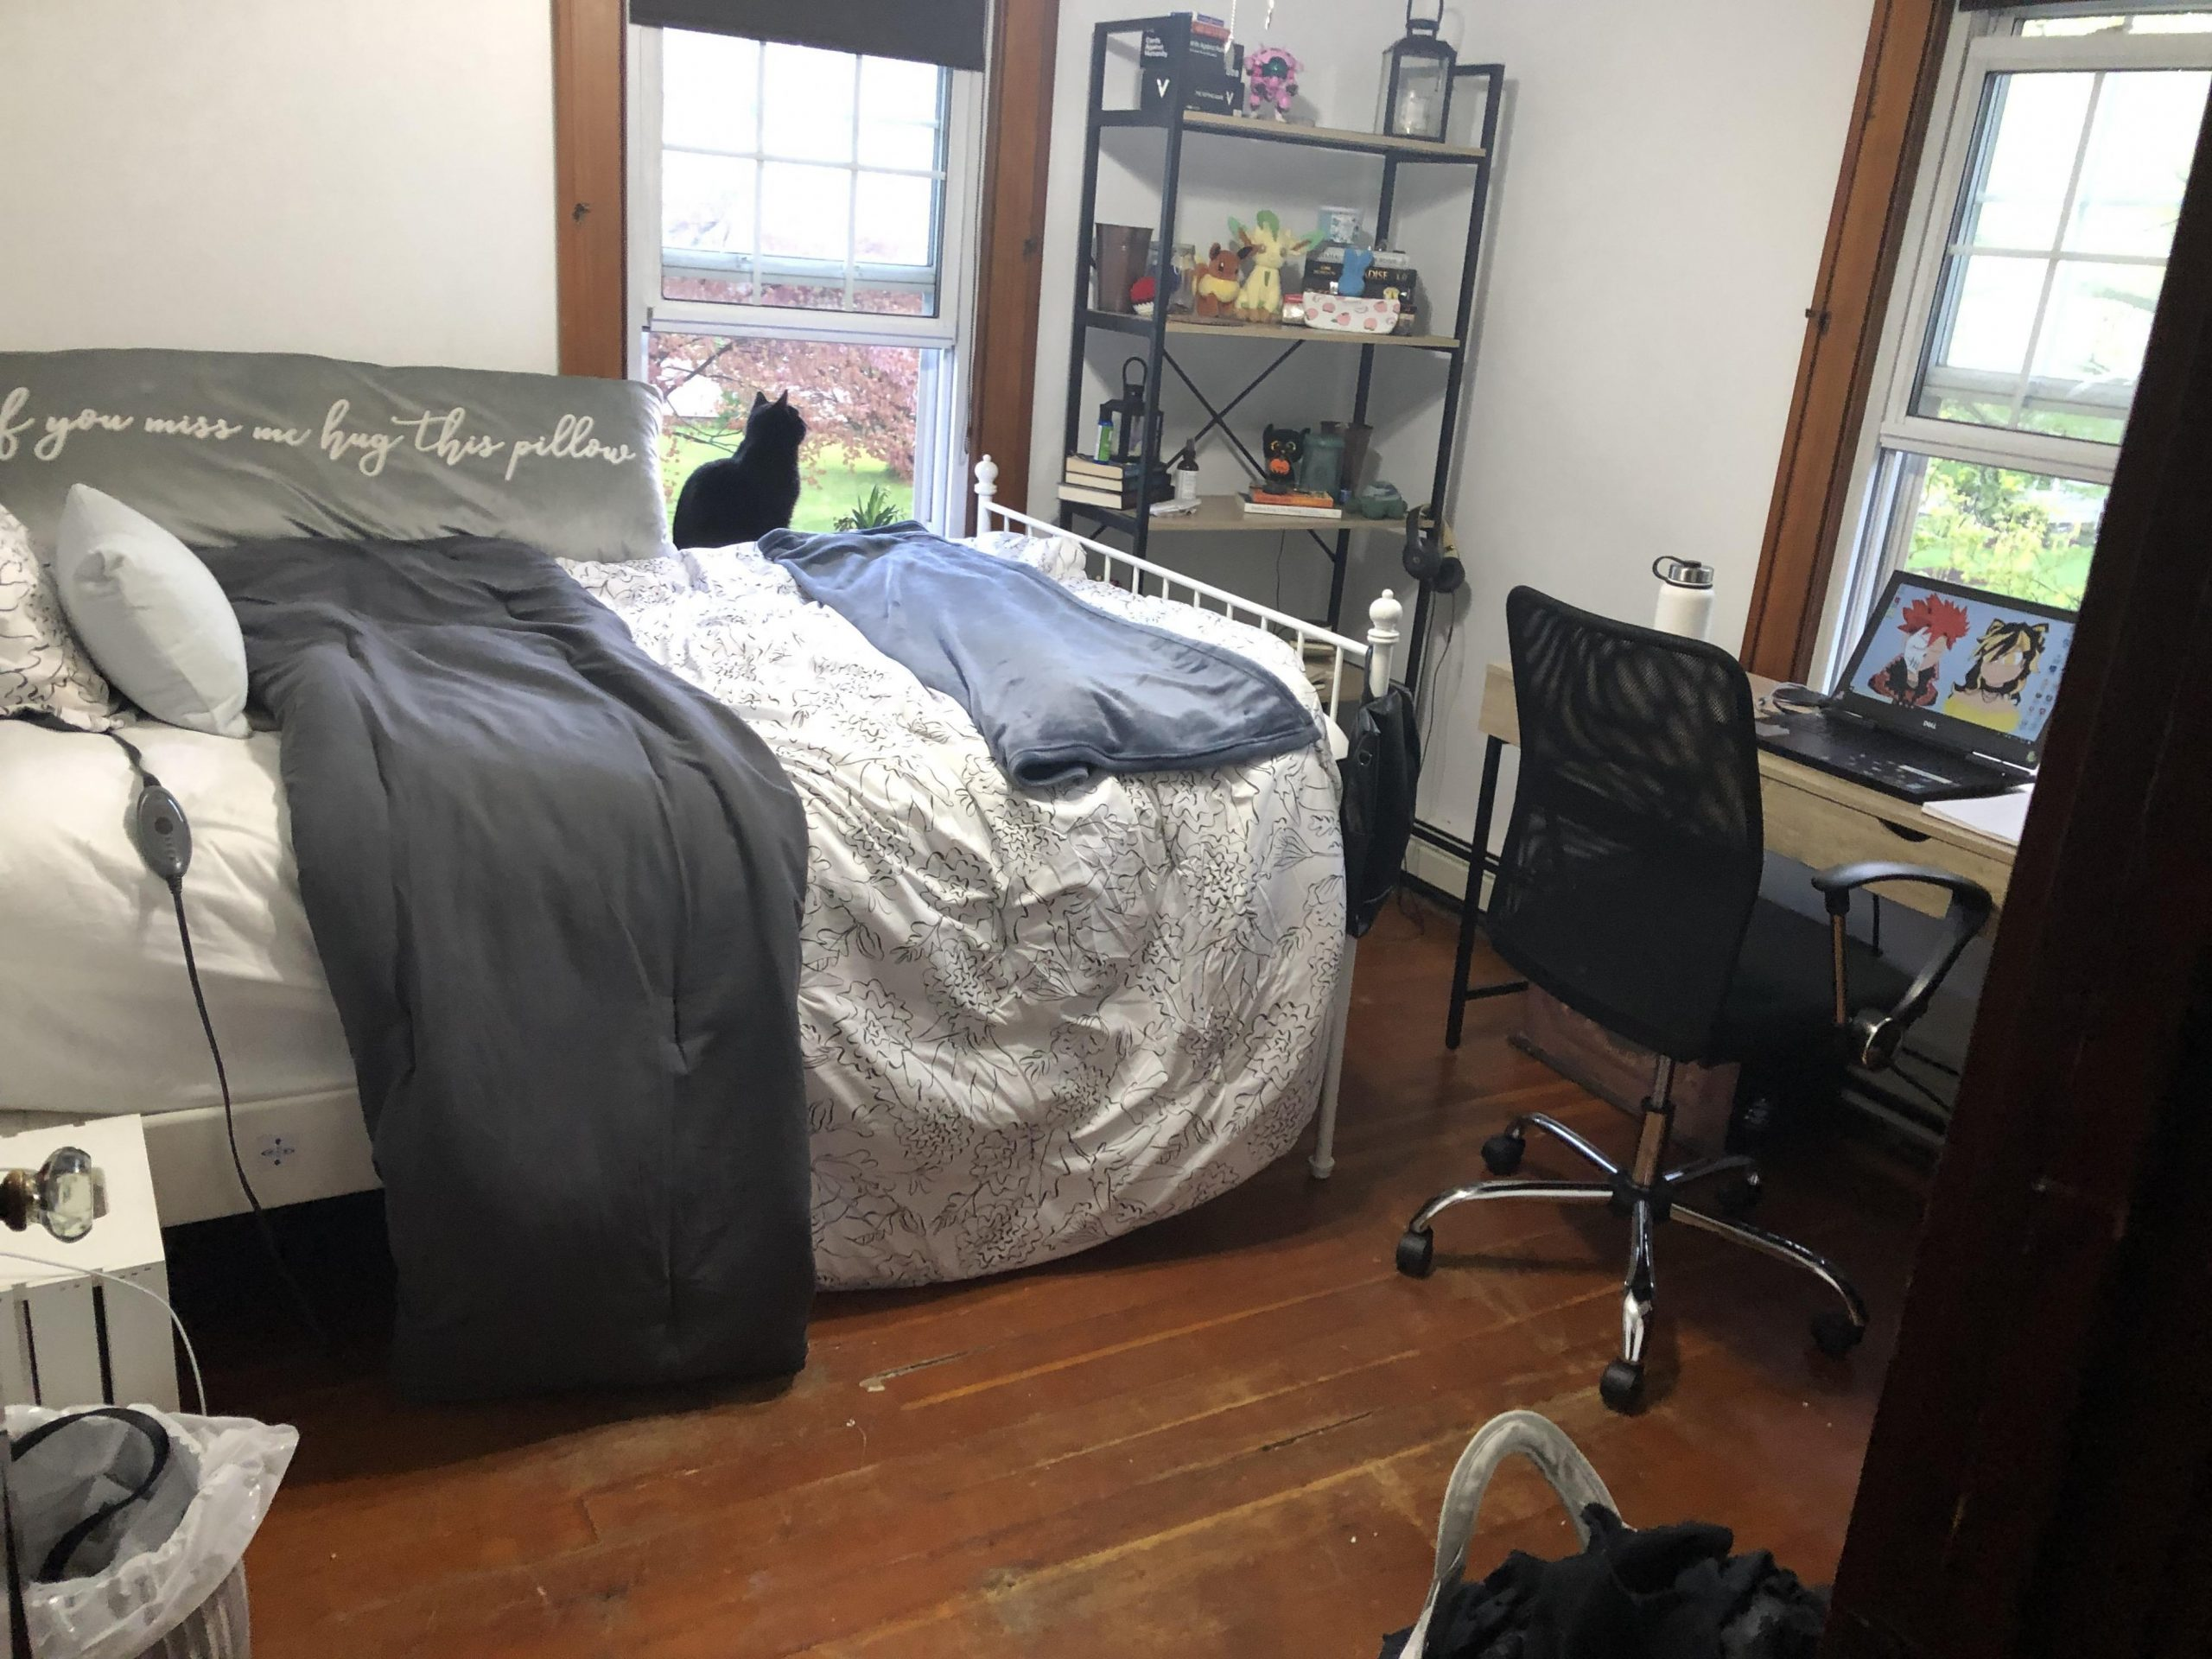 my room is about 8x8 feet i would guess? not sure if this layout  - Bedroom Ideas Reddit